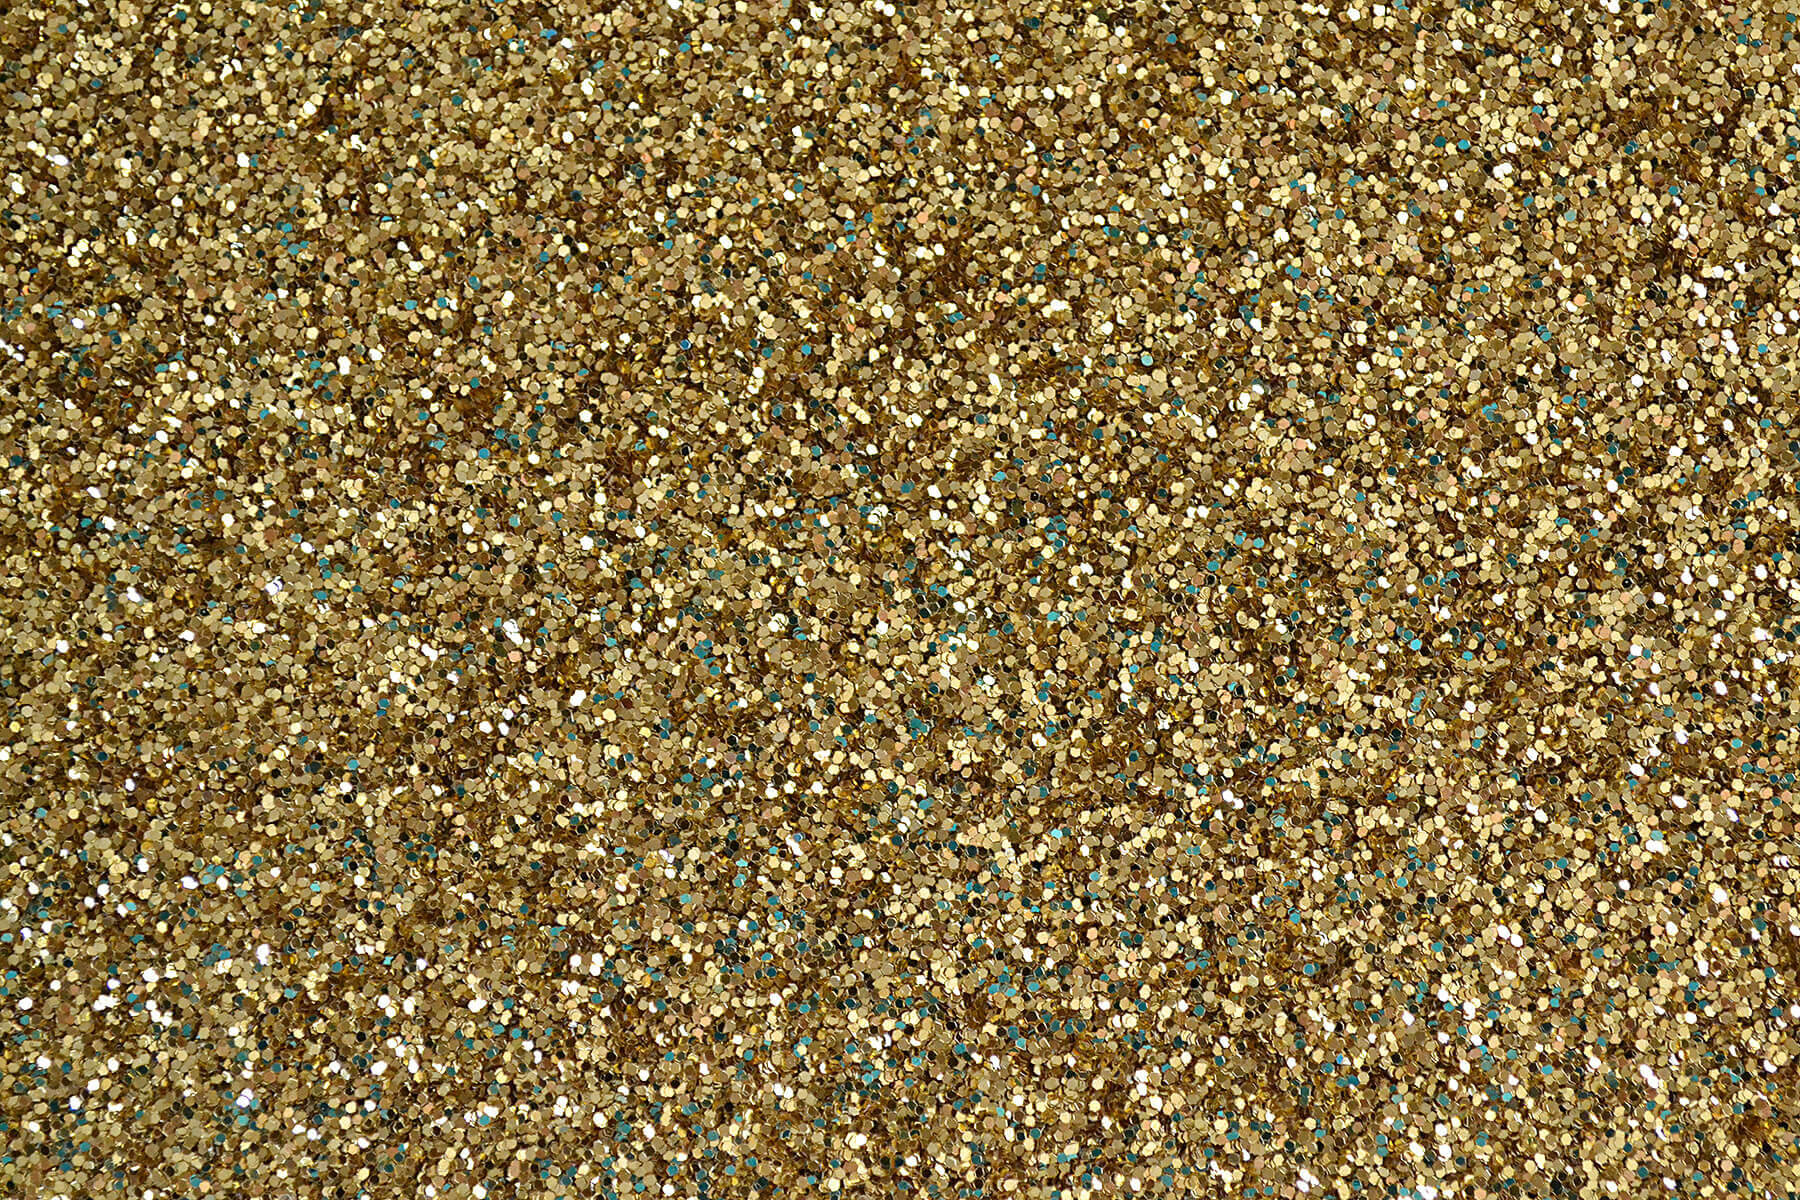 GOLD GLITTER high res desktop image smart phone background 1800x1200